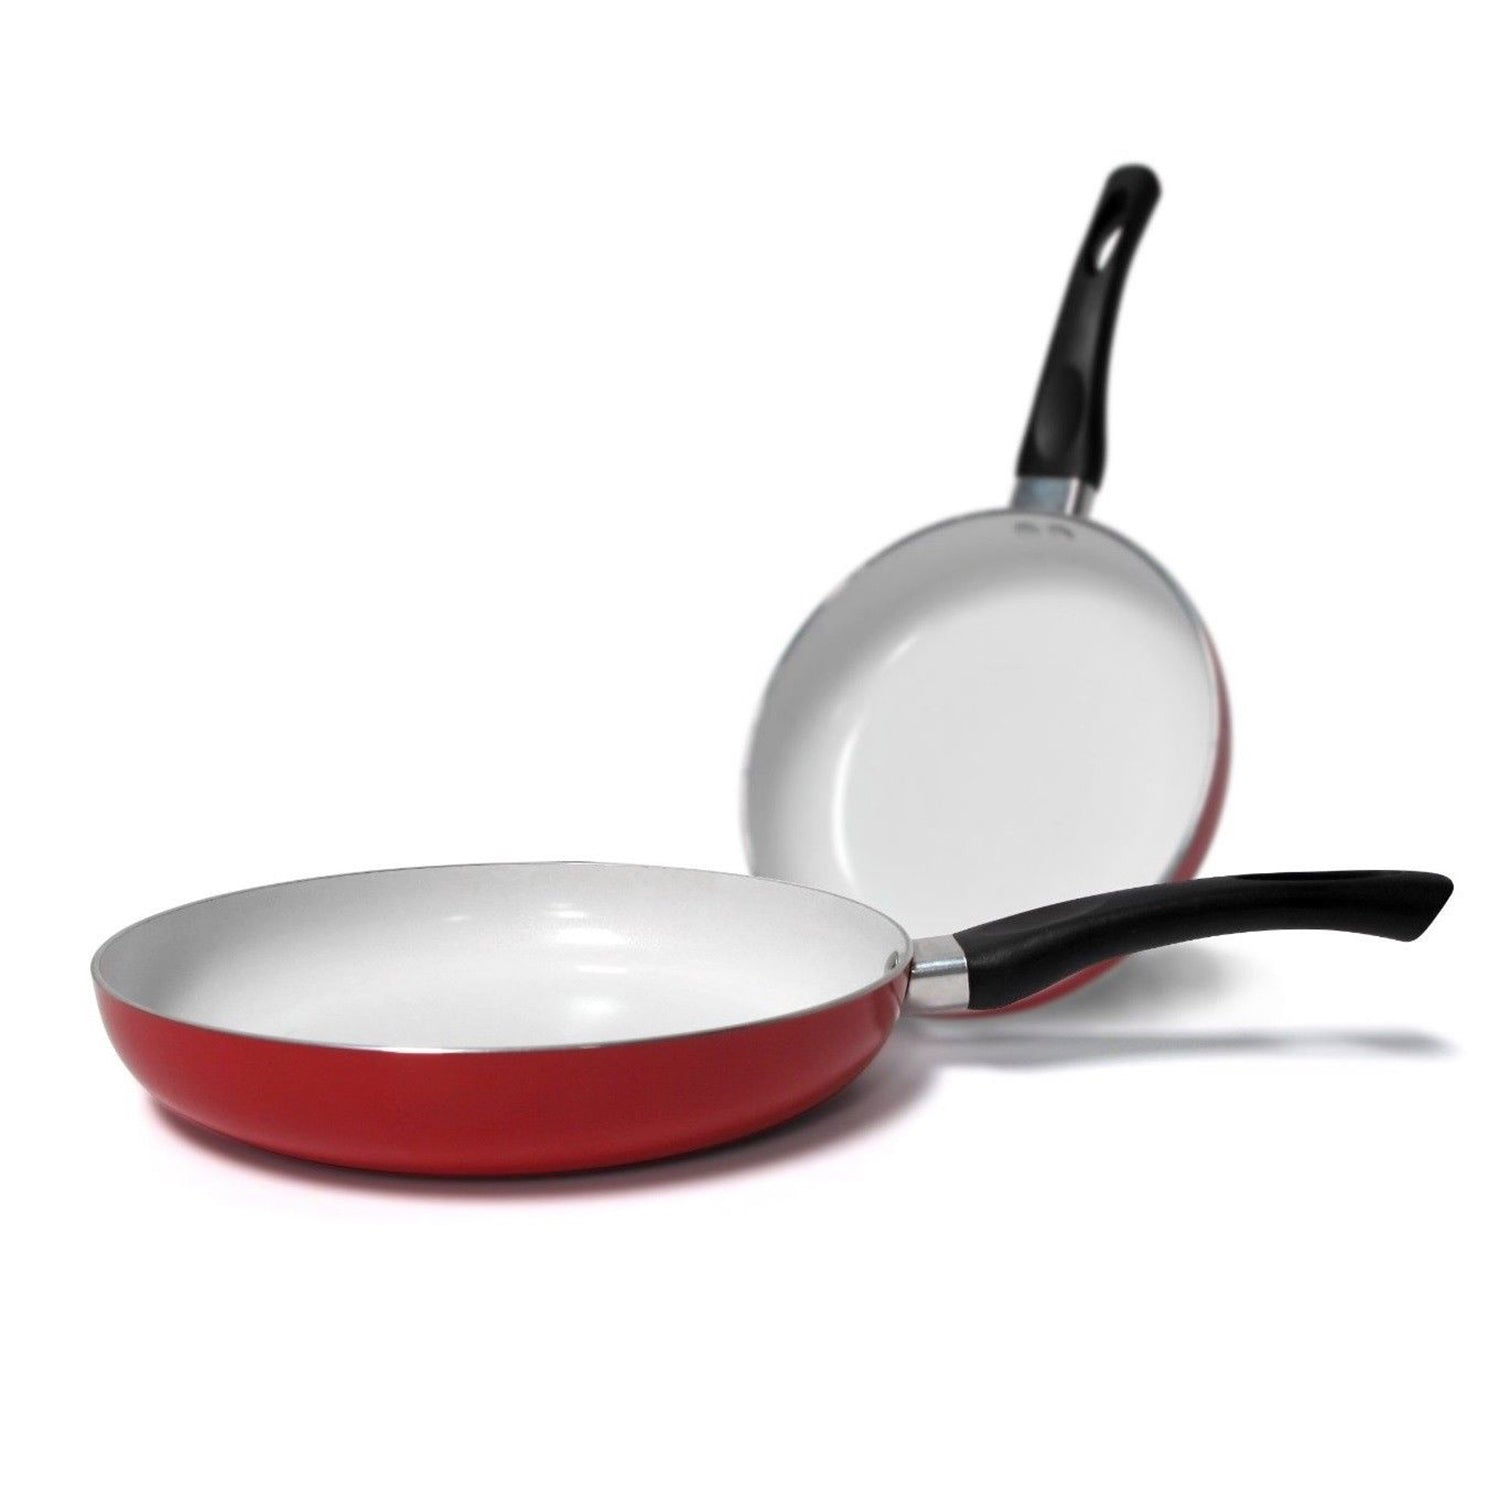 Healthy Nonstick Ceramic Coated Frying Pan - Durable Fry Pan